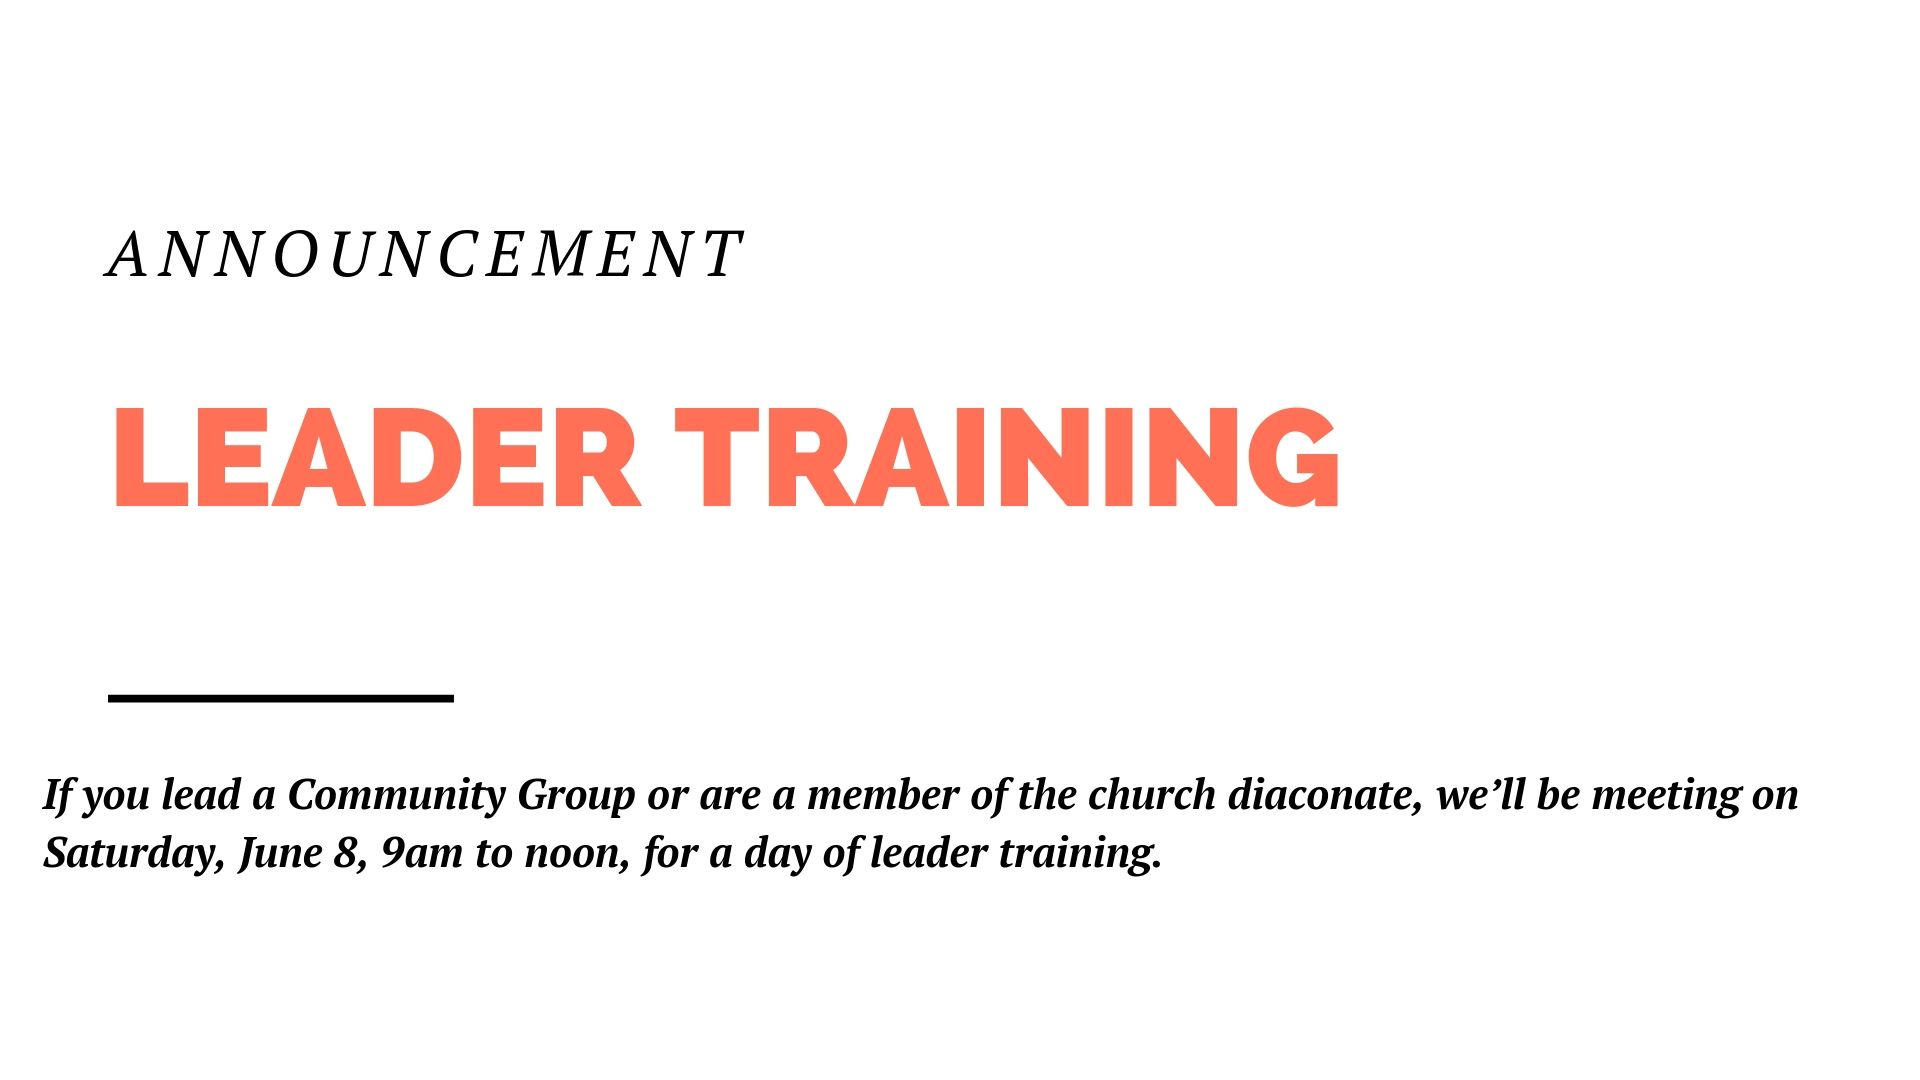 If you lead a Community Group or are a member of the church diaconate, we'll be meeting on Saturday, June 8, 9am to noon, for a day of leader training. Come drink coffee, eat doughnuts, and grow in alignment with the other leaders throughout the church.